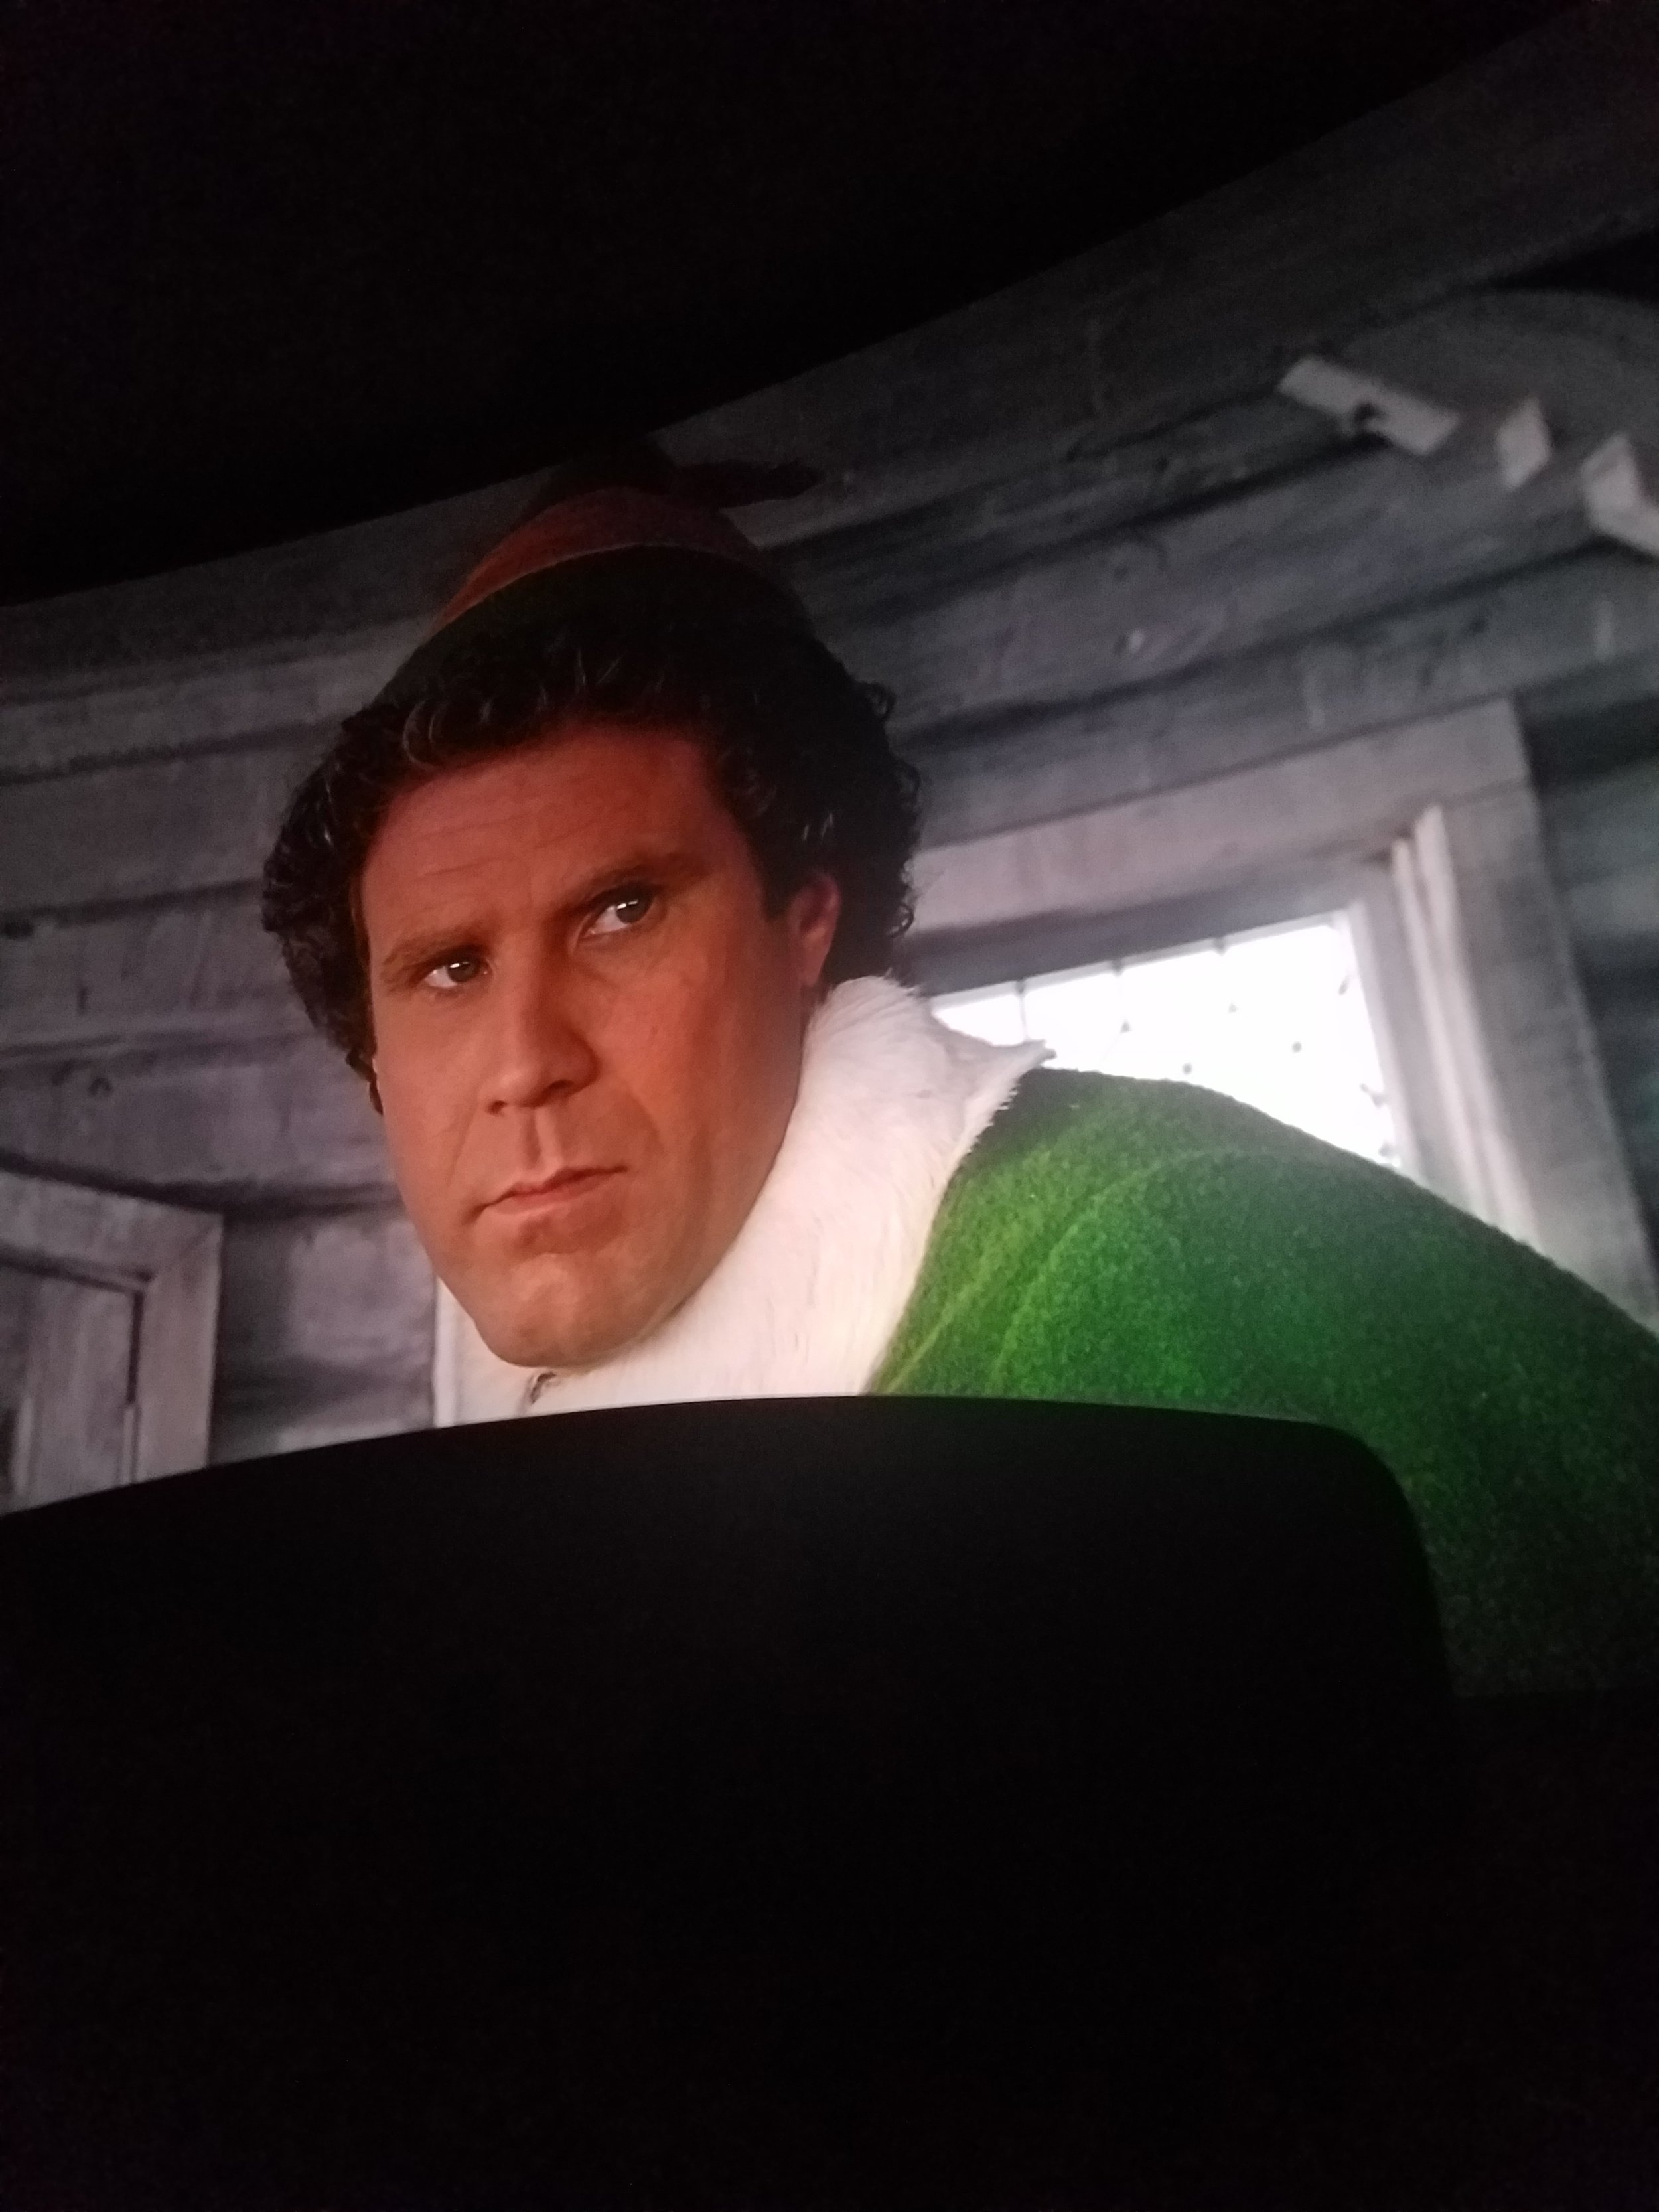 Buddy the Elf - larger than life!